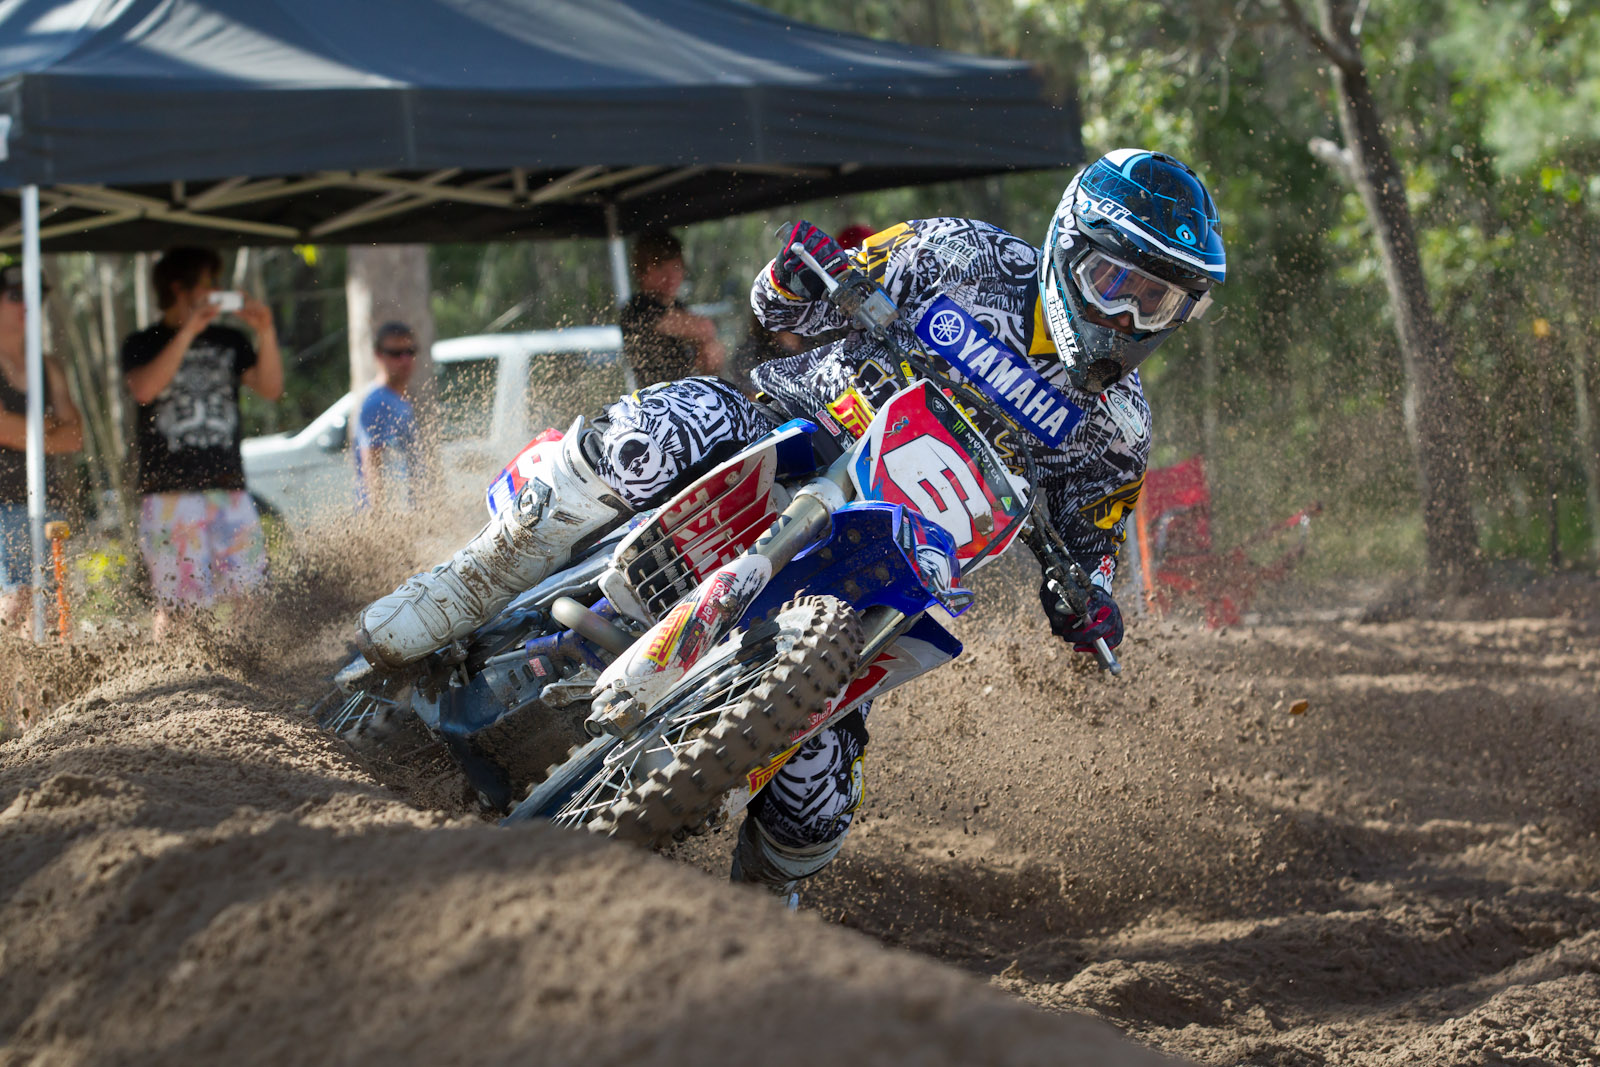 Serco Yamaha Confirm Styke and Clout for 2013